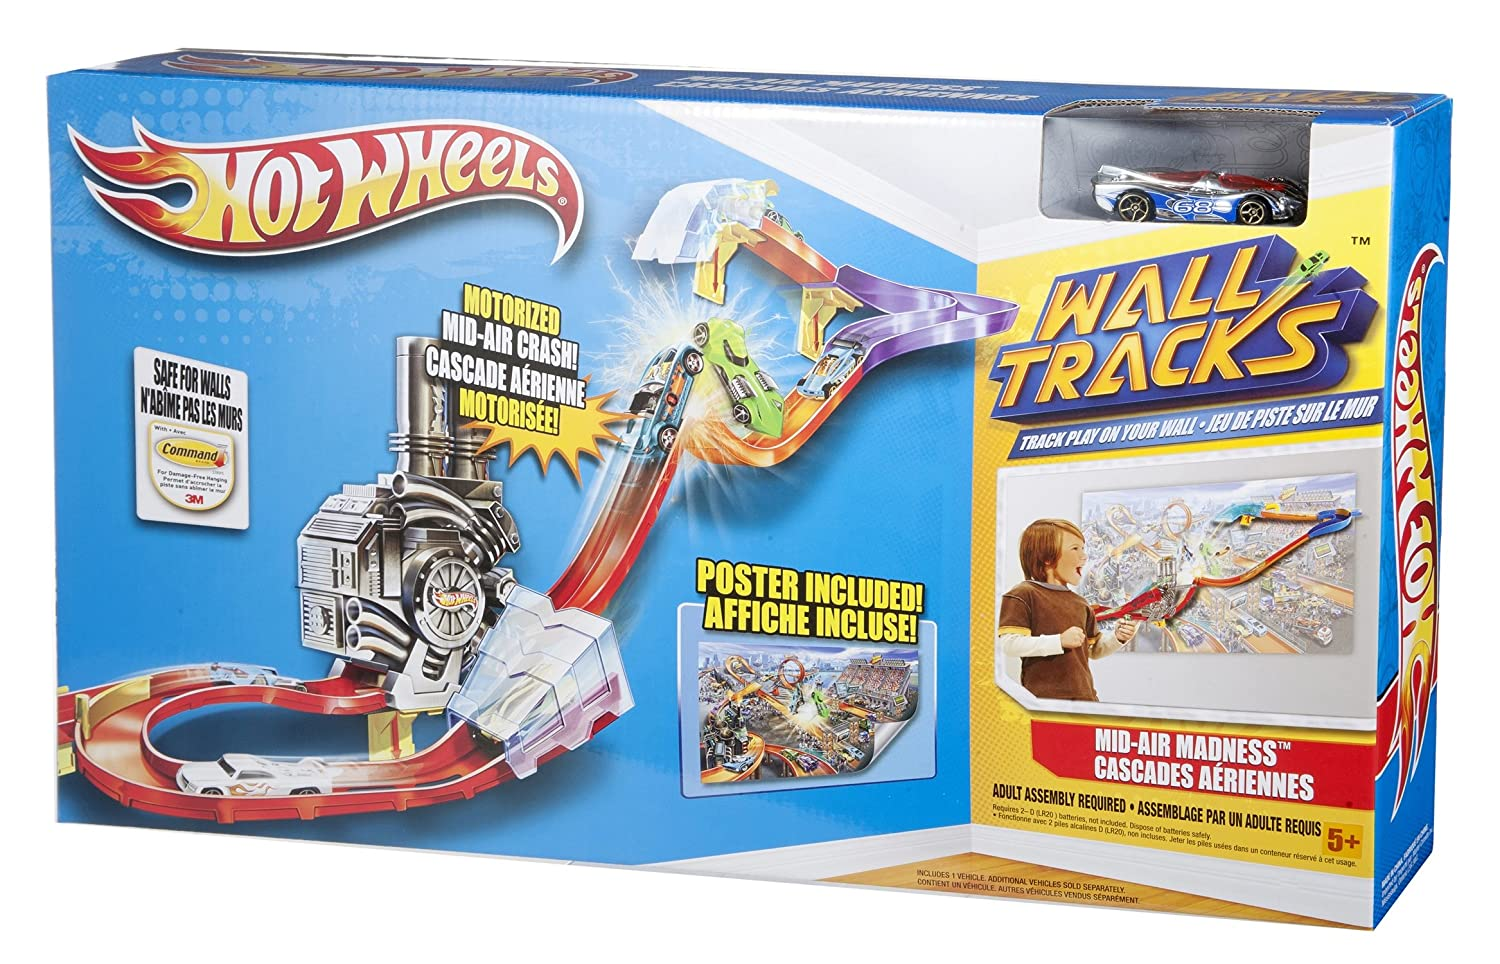 Buy Hotwheel Hot Wheels Wall Tracks Booster Set Online at Low Prices ...